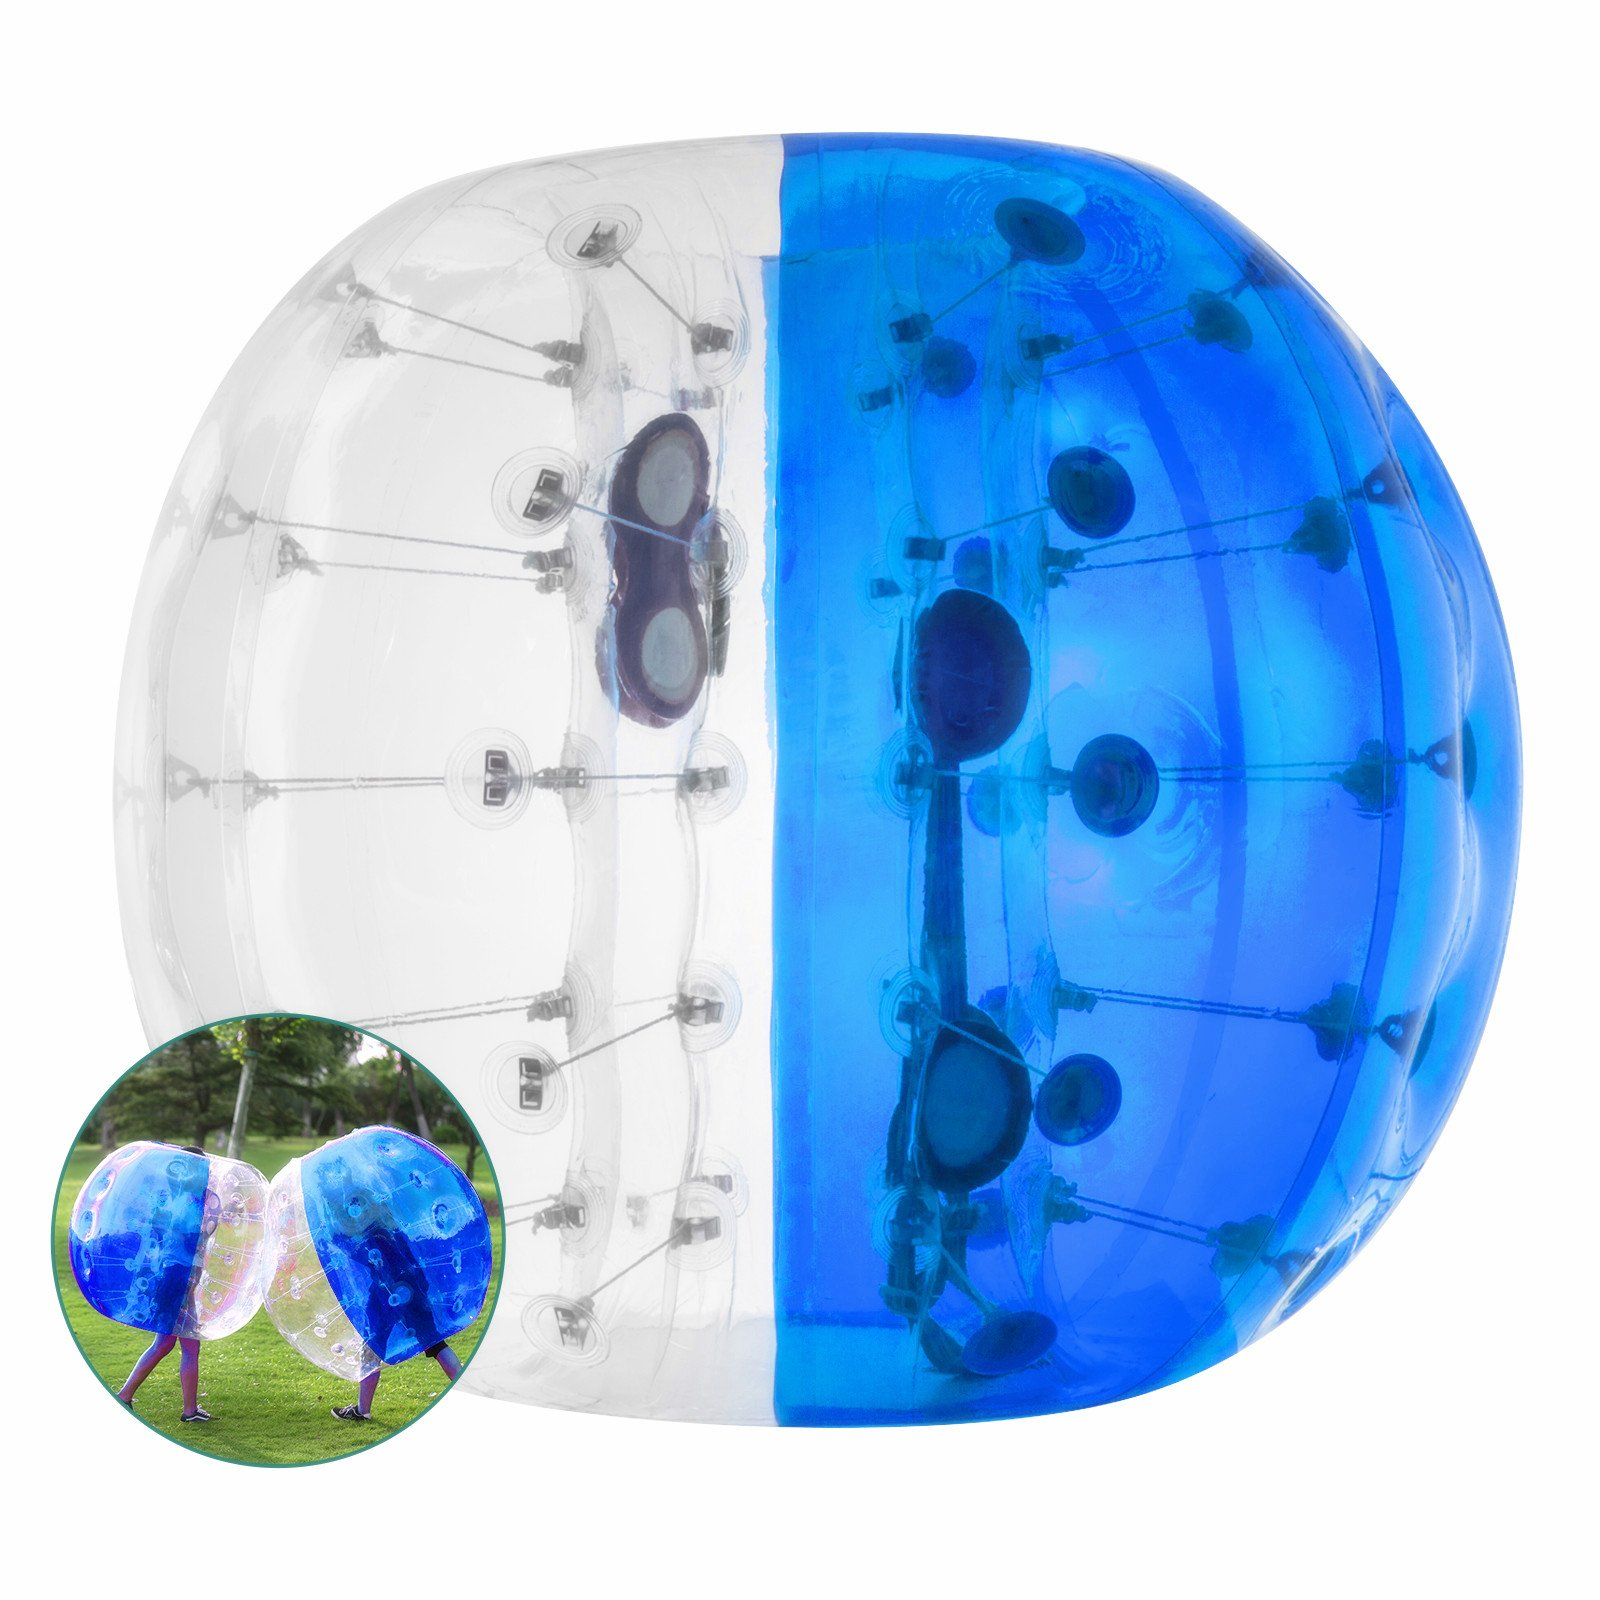 Popsport Inflatable Bumper Ball 4FT/5FT Bubble Soccer Ball 0.8mm Eco-Friendly PVC Zorb Ball Human Hamster Ball for Adults and Kids (5FT Half Blue) by Popsport